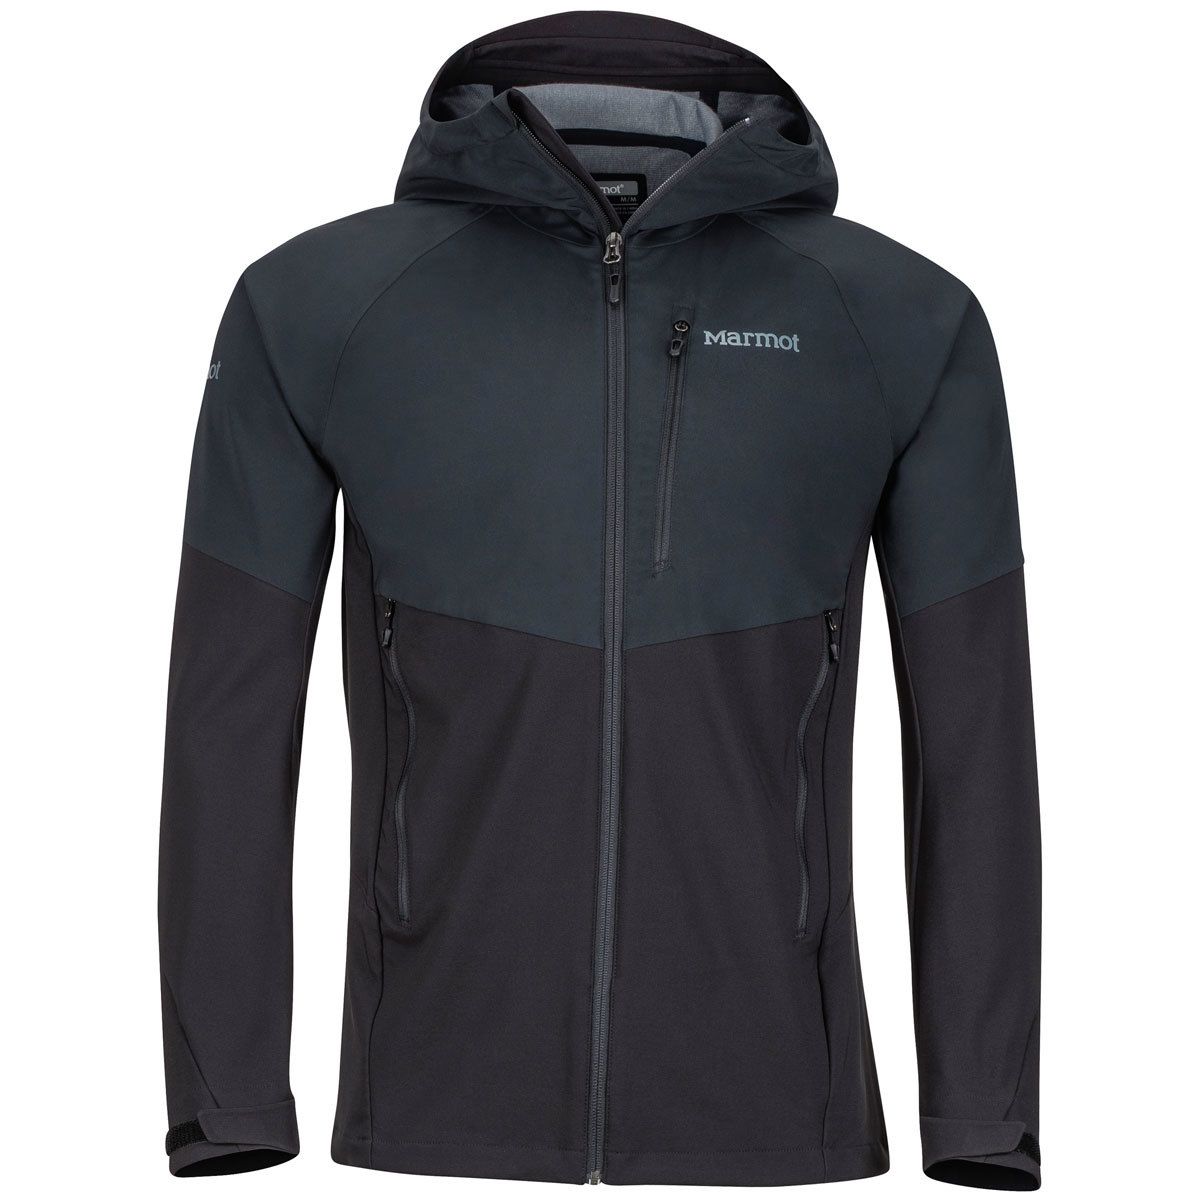 Marmot Men's Rom Jacket - Black, XL